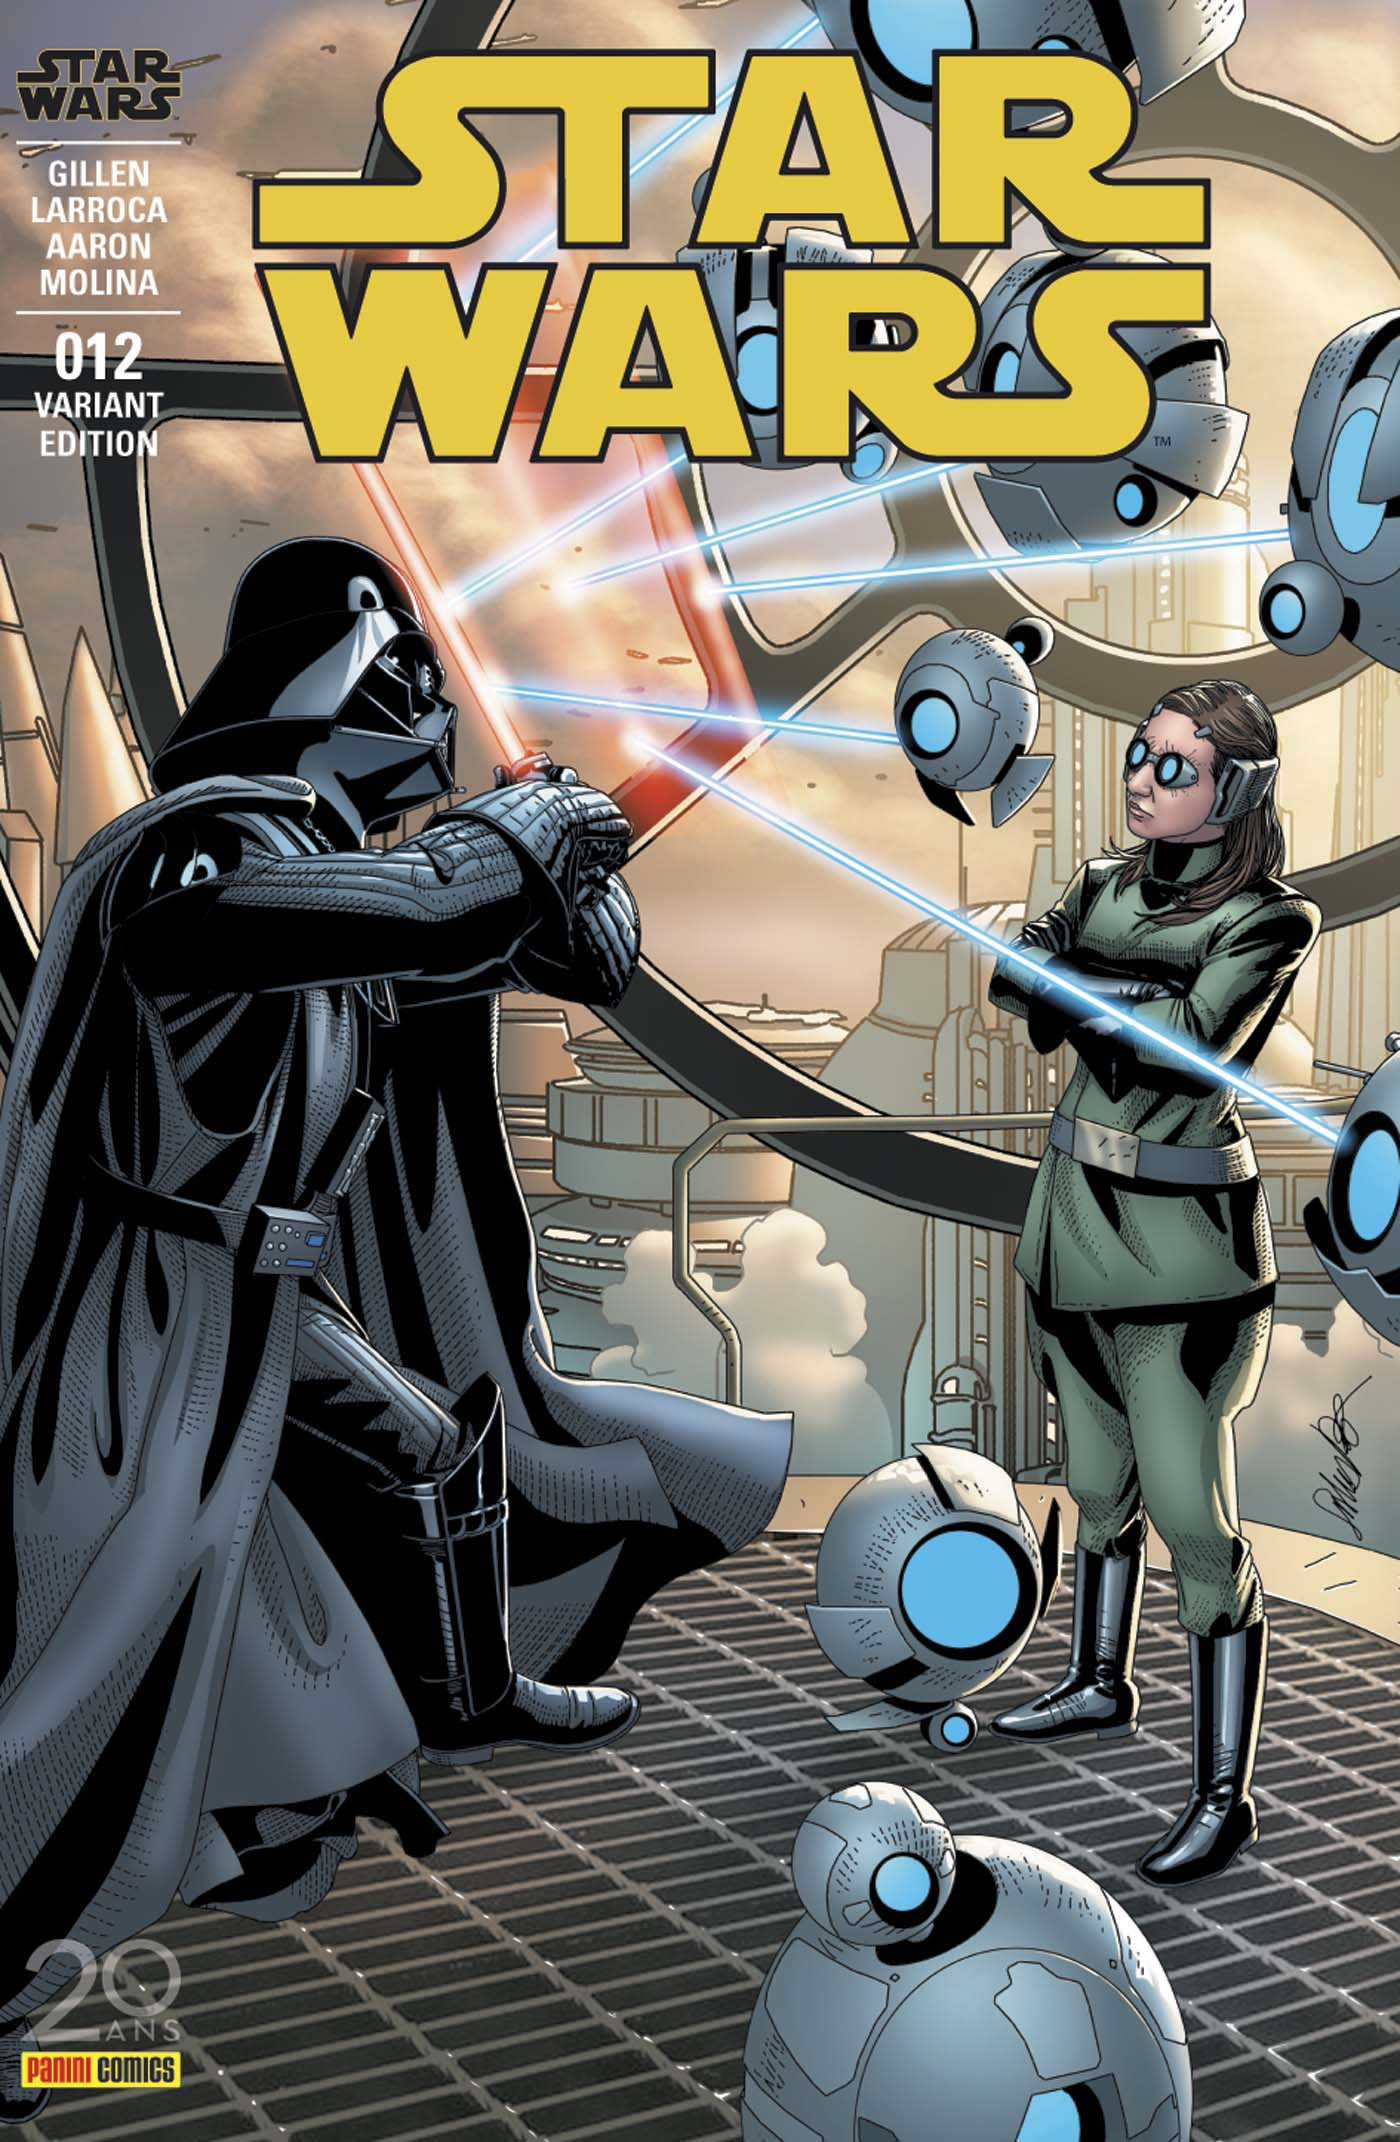 Star Wars Comics 12 - Couverture B